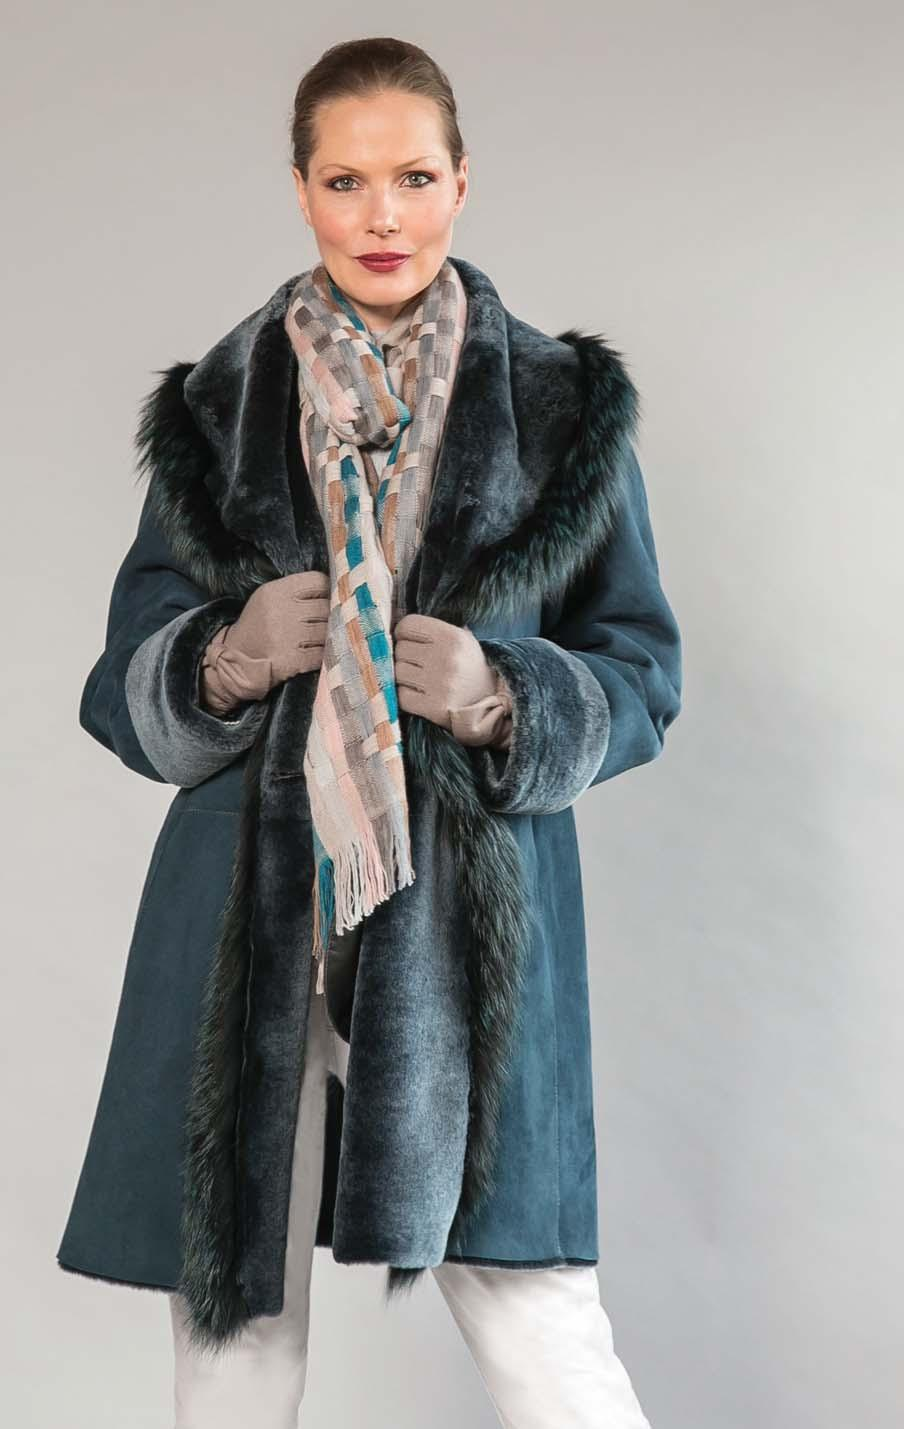 HISO hooded shearling coat with fox trimmed edge. Teal, marsala. $2895 GAYNOR OF ITALY basket weave scarf.